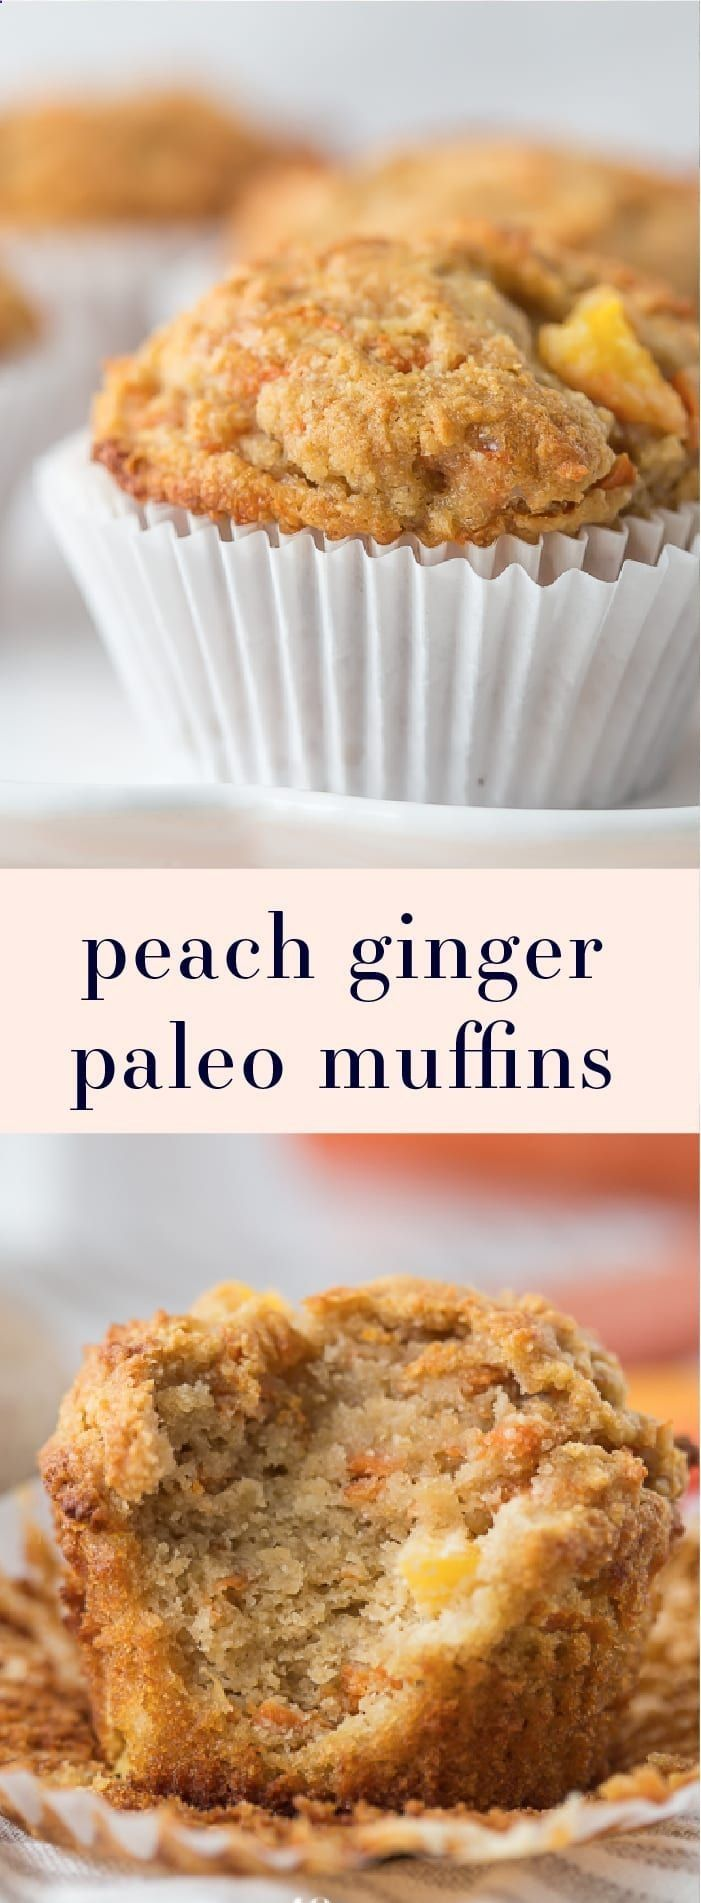 These peach ginger paleo muffins are moist and tender, full of fruity, fresh peaches and earthy ginger. The best thing about these paleo muffins? They dont taste like theyre paleo! Grain-free, gluten-free, and refined sugar-free, these make an awesome paleo breakfast, too.